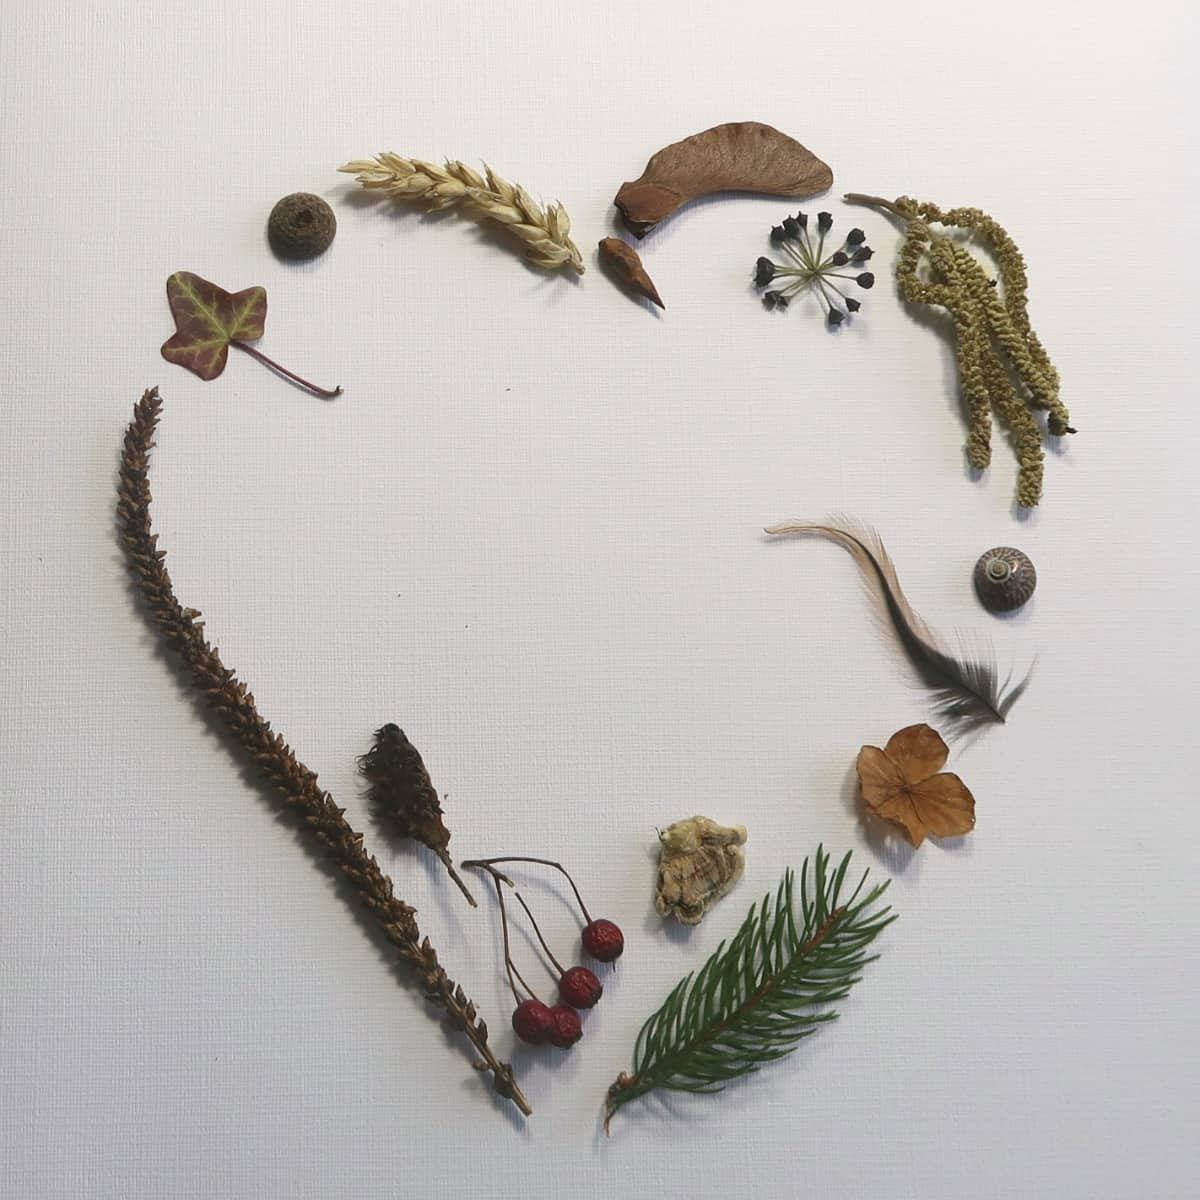 This beautiful heart collage proves that nature collages aren't just for kids. It couldn't be simpler to make, and the result is truly stunning. Nature really is the star of the show in this gorgeous Valentines gift. #NatureCollage #HeartCollage #HeartPicture #Valentines